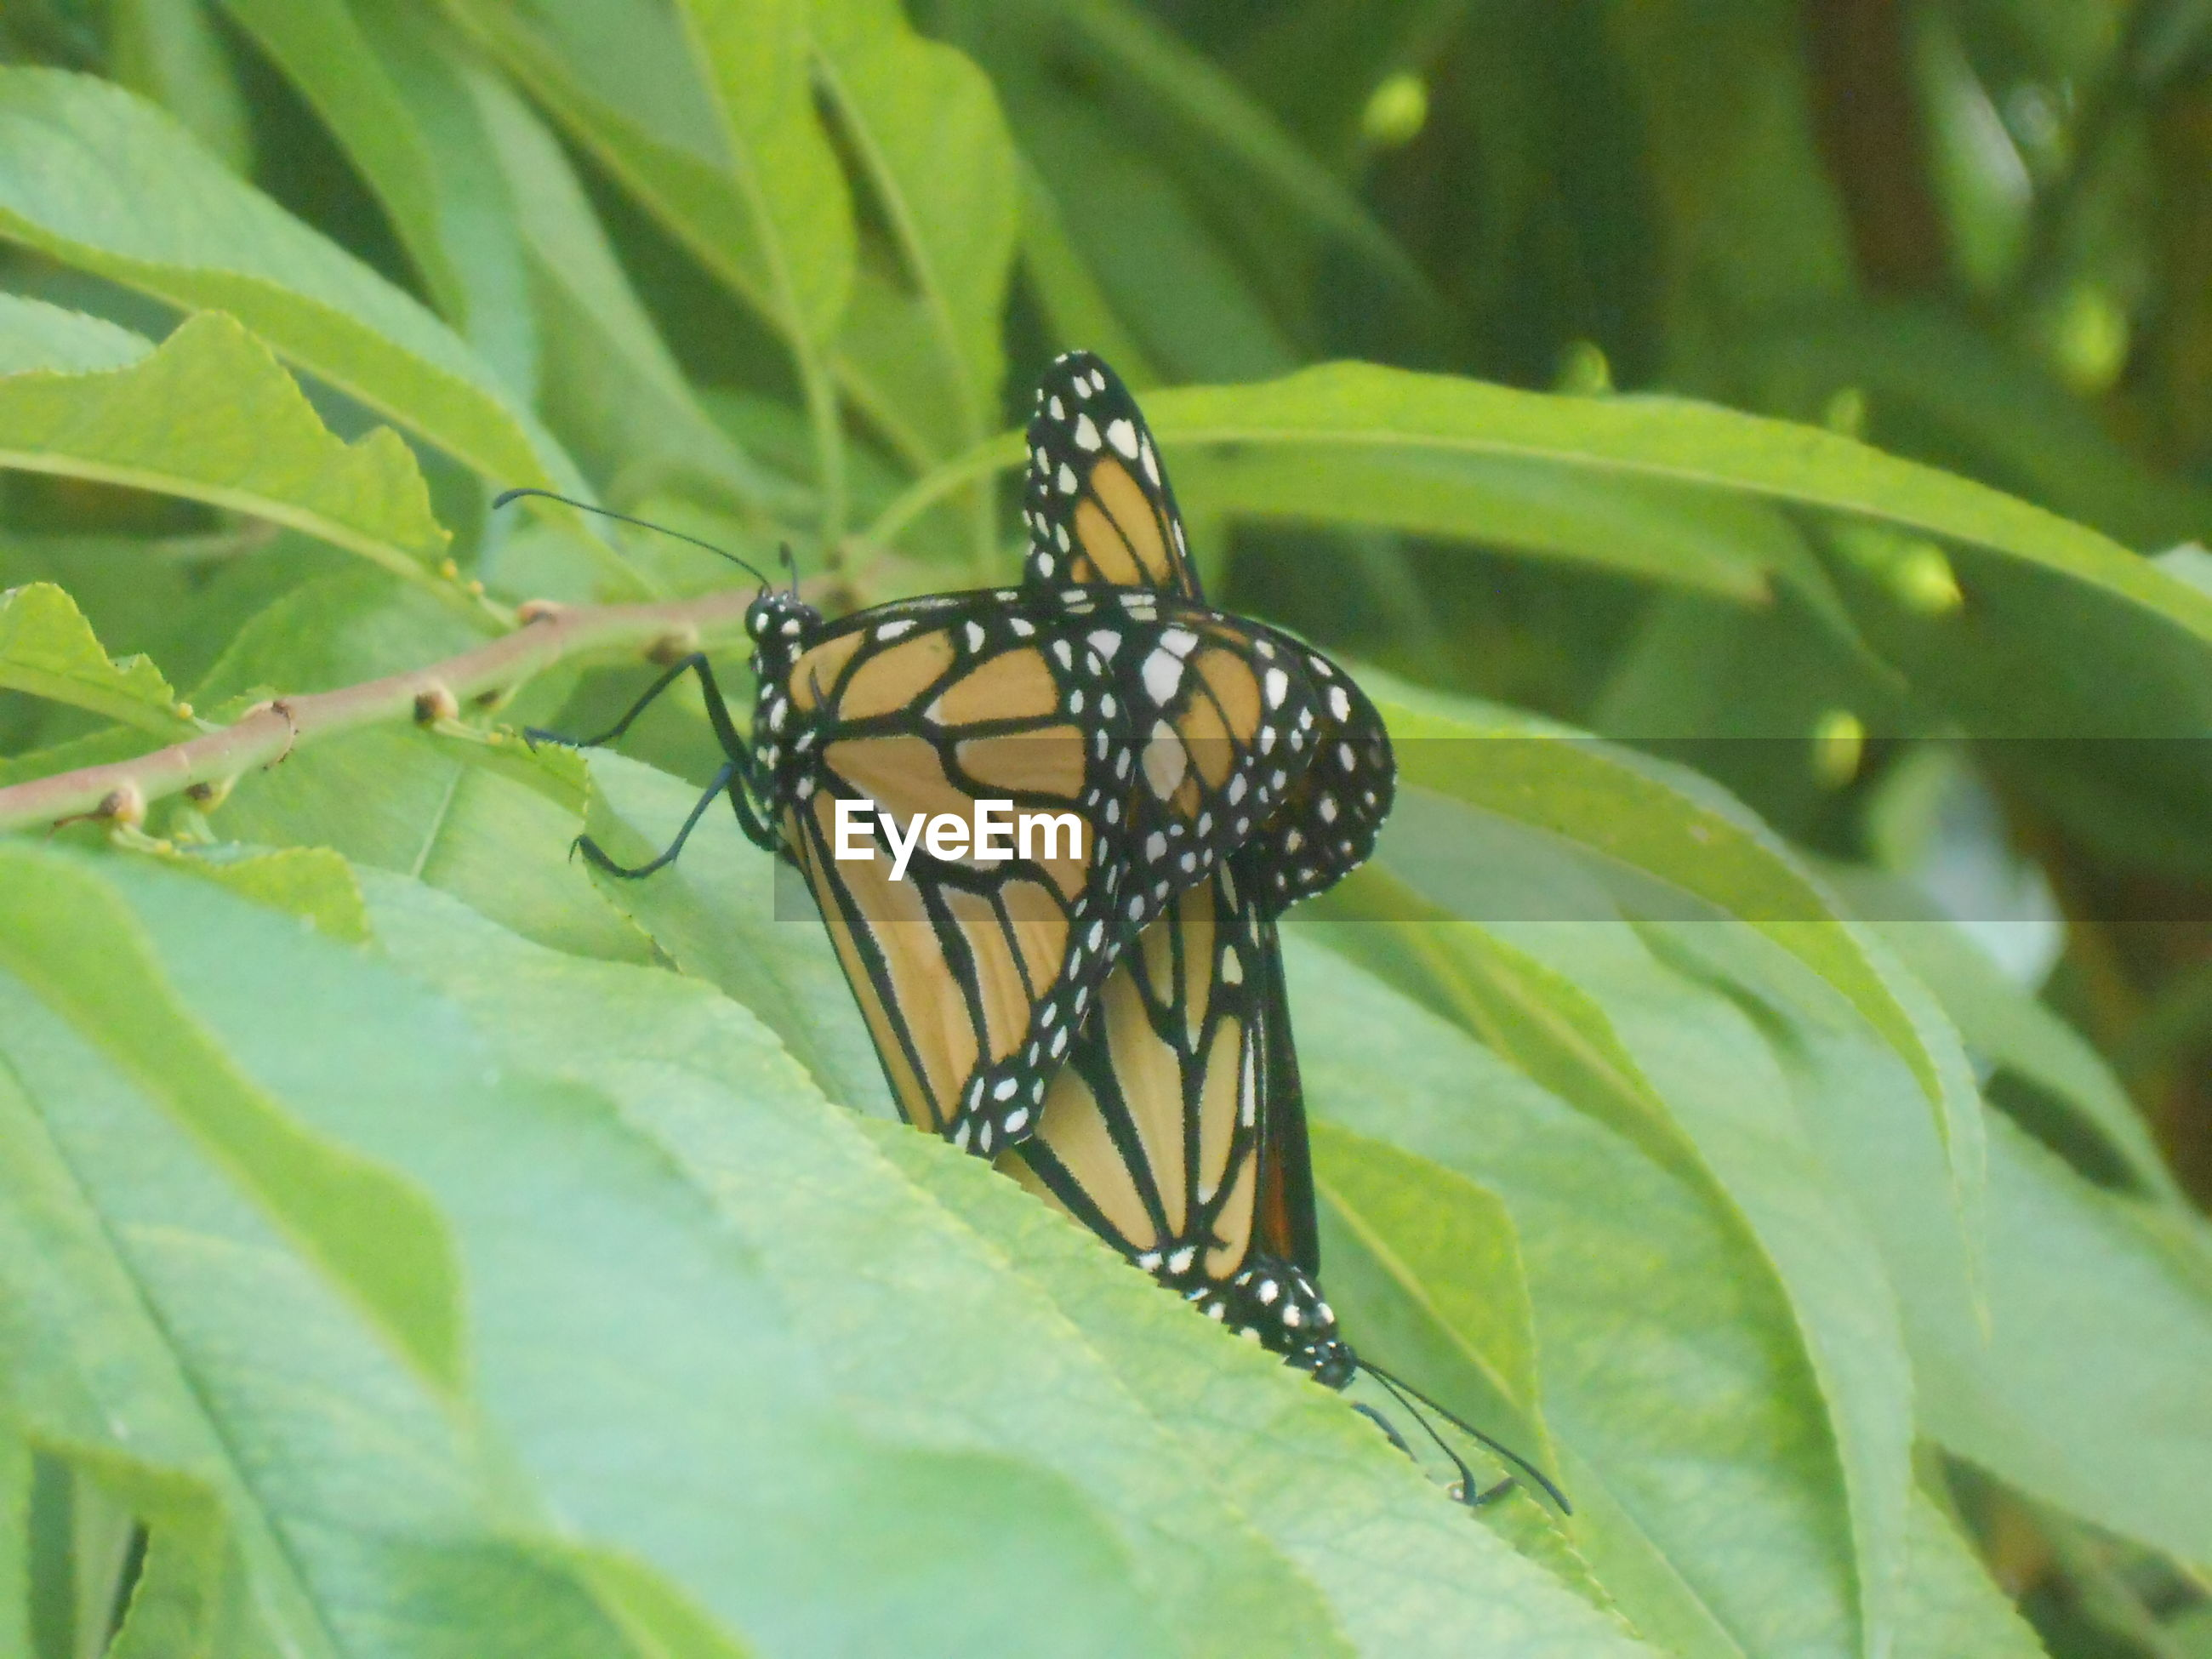 CLOSE-UP OF BUTTERFLY ON PLANT LEAF